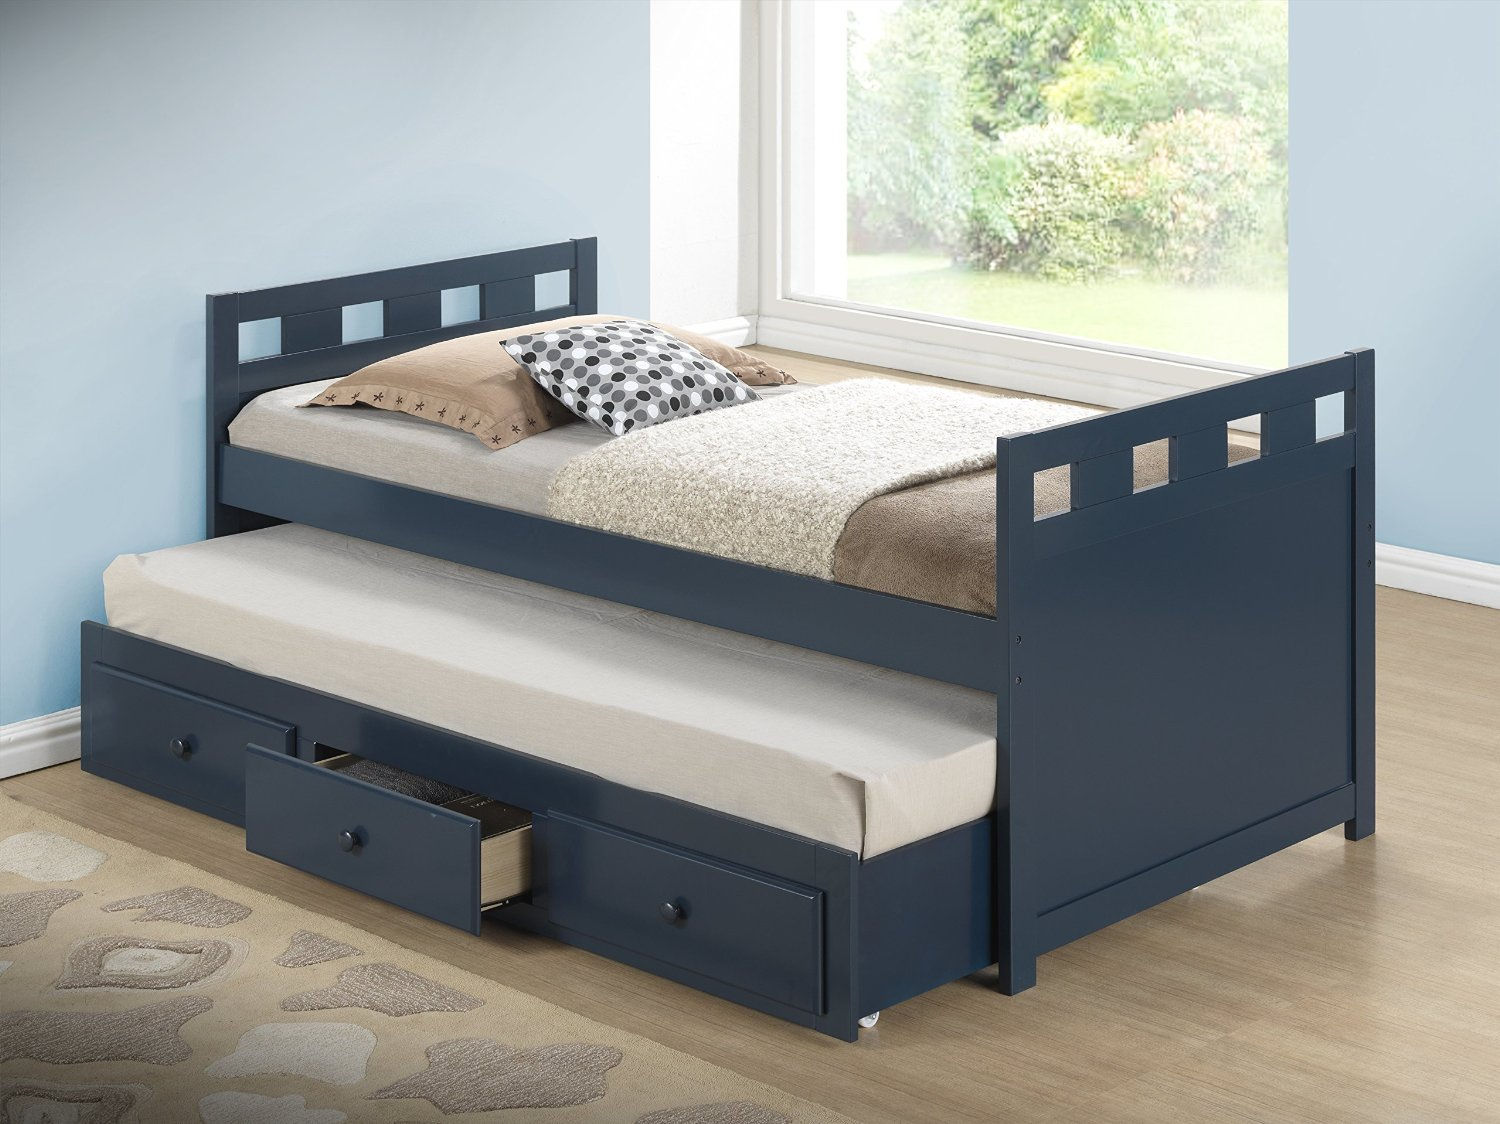 Twin Bed with Pull Out/Slide Out (Trundle) Bed Underneath ...